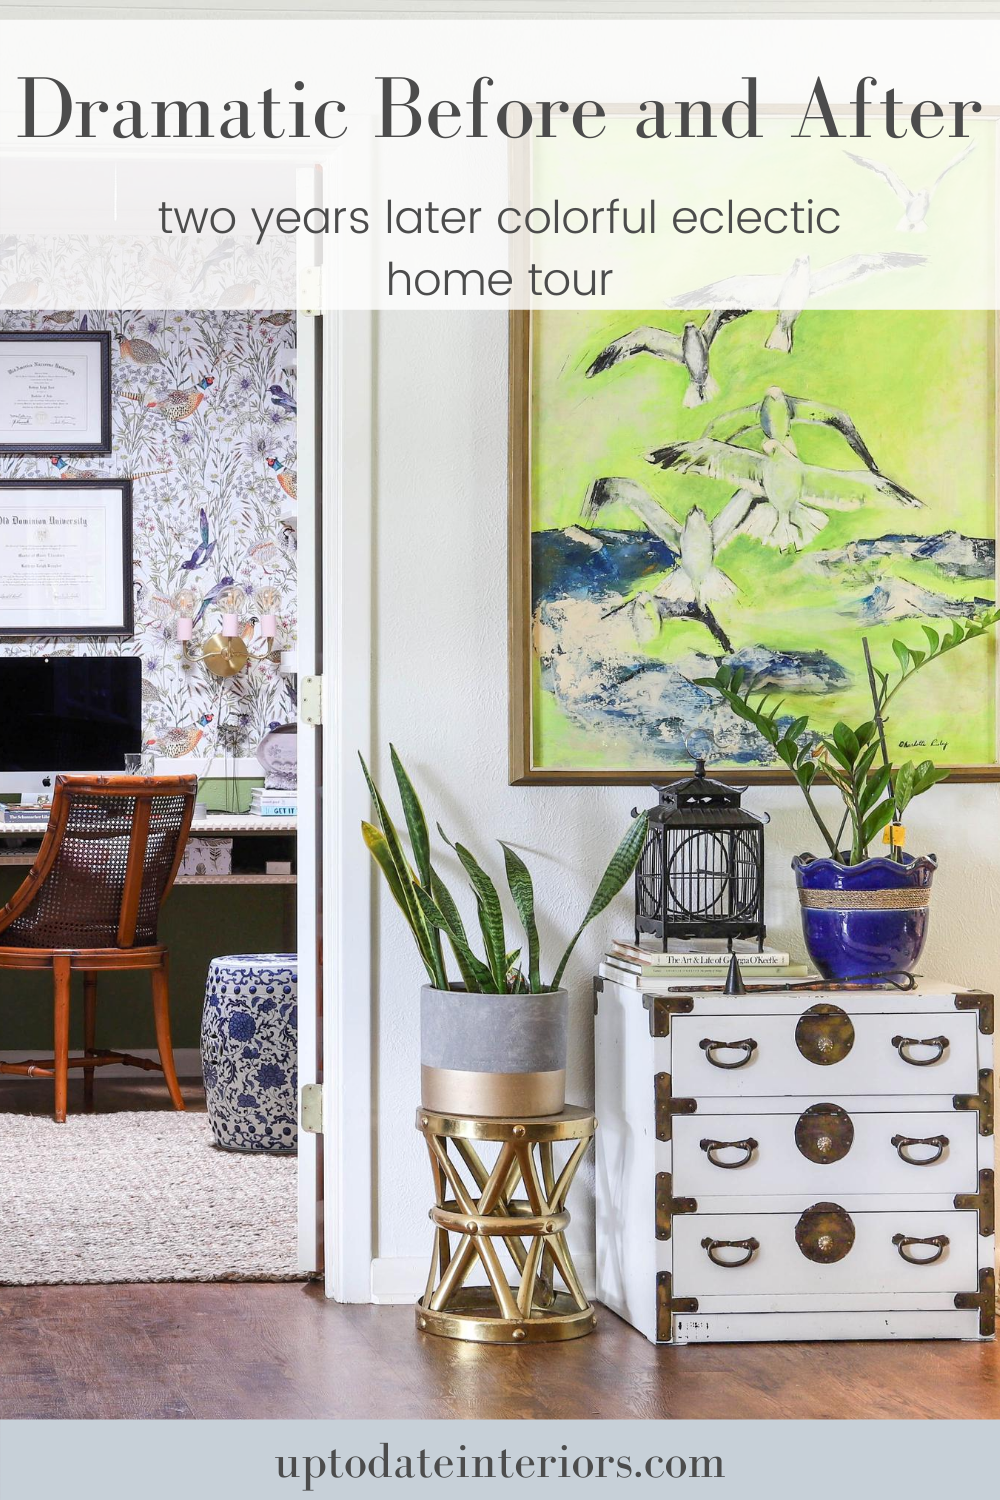 See dramatic before and afters in our two years later colorful and eclectic home tour with budget-friendly DIYs and decor. Click over to uptodateinteriors.com for all of the details. #eclecticdecor #eclectichome